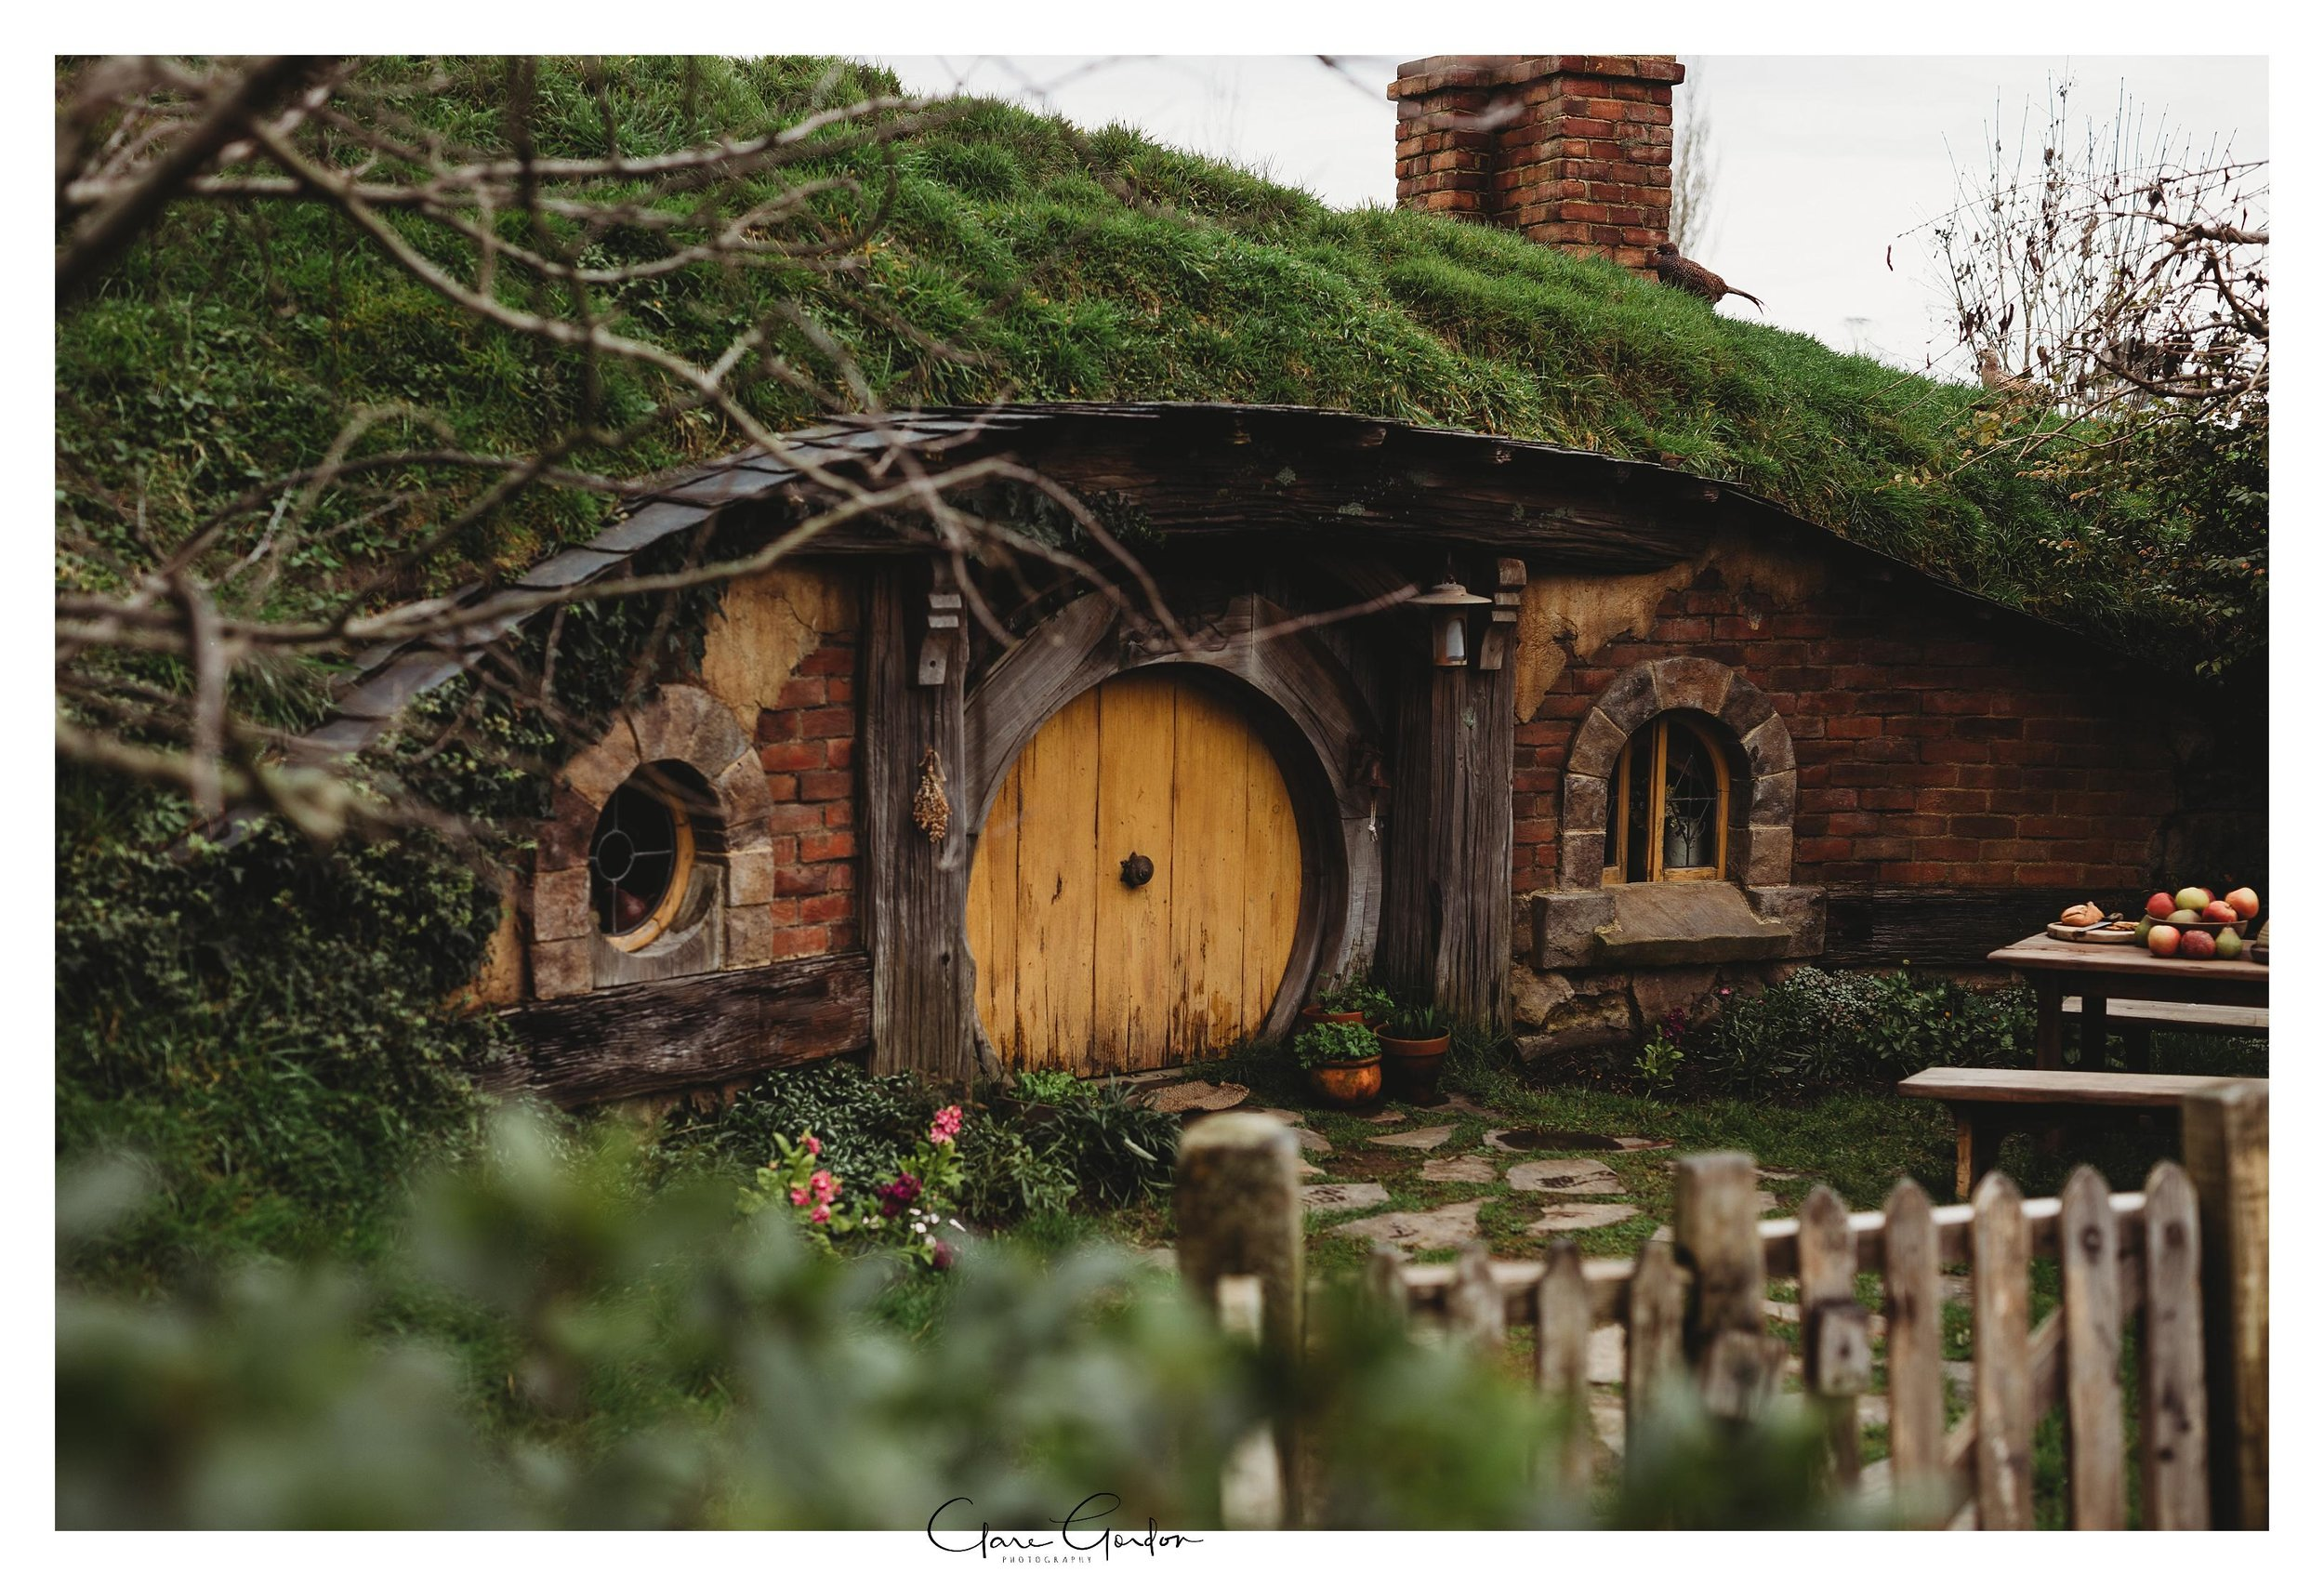 Hobbiton-movie-set-wedding-photo-matamata-bride-and-groom-Photo_newZealand-wedding-photographer (10).jpg